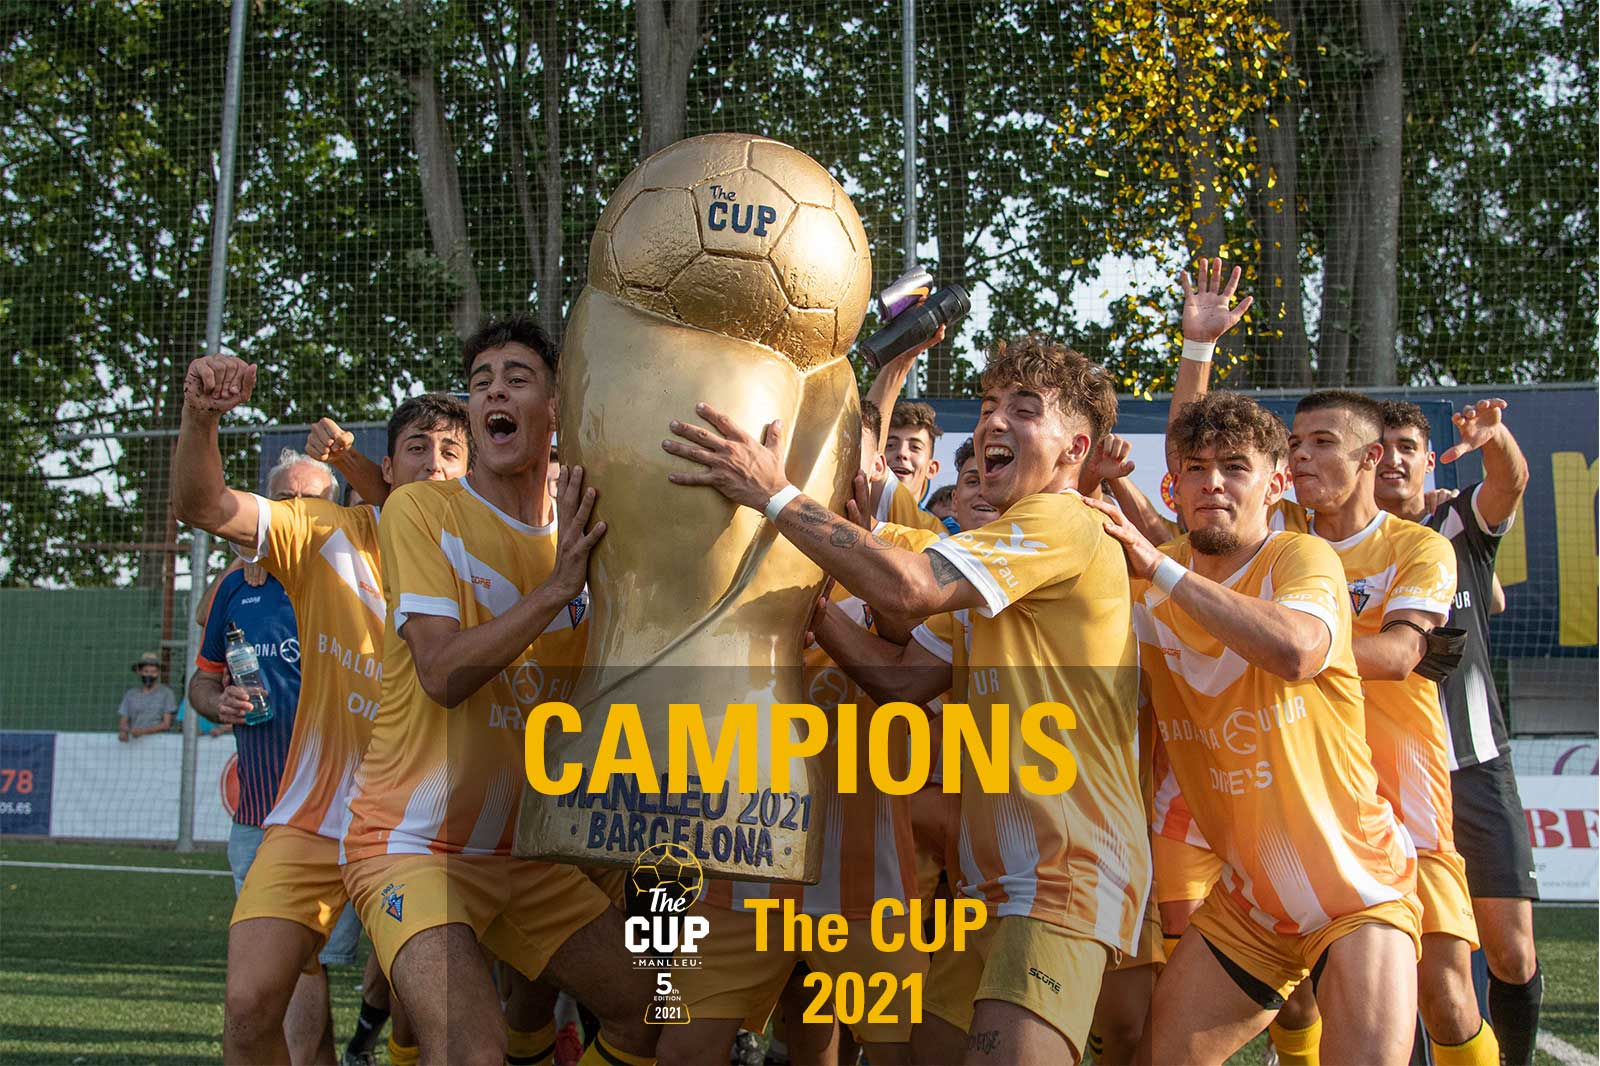 campions-2021-thecup